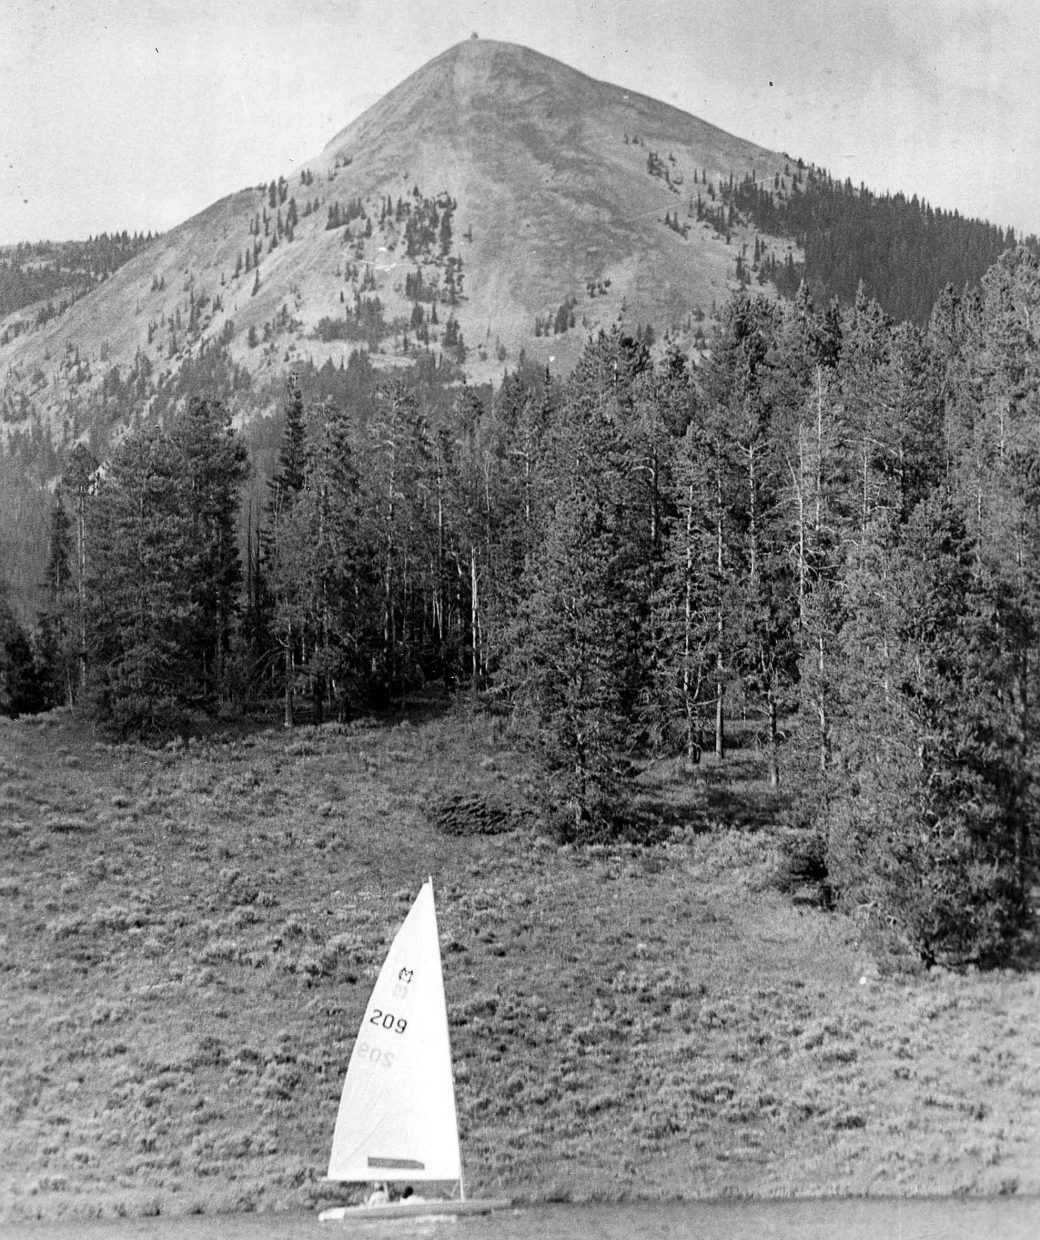 A sailboat makes its way across Steamboat Lake. This photograph was taken by former Steamboat Today photographer Tyler Arroyo in the early 1990s.